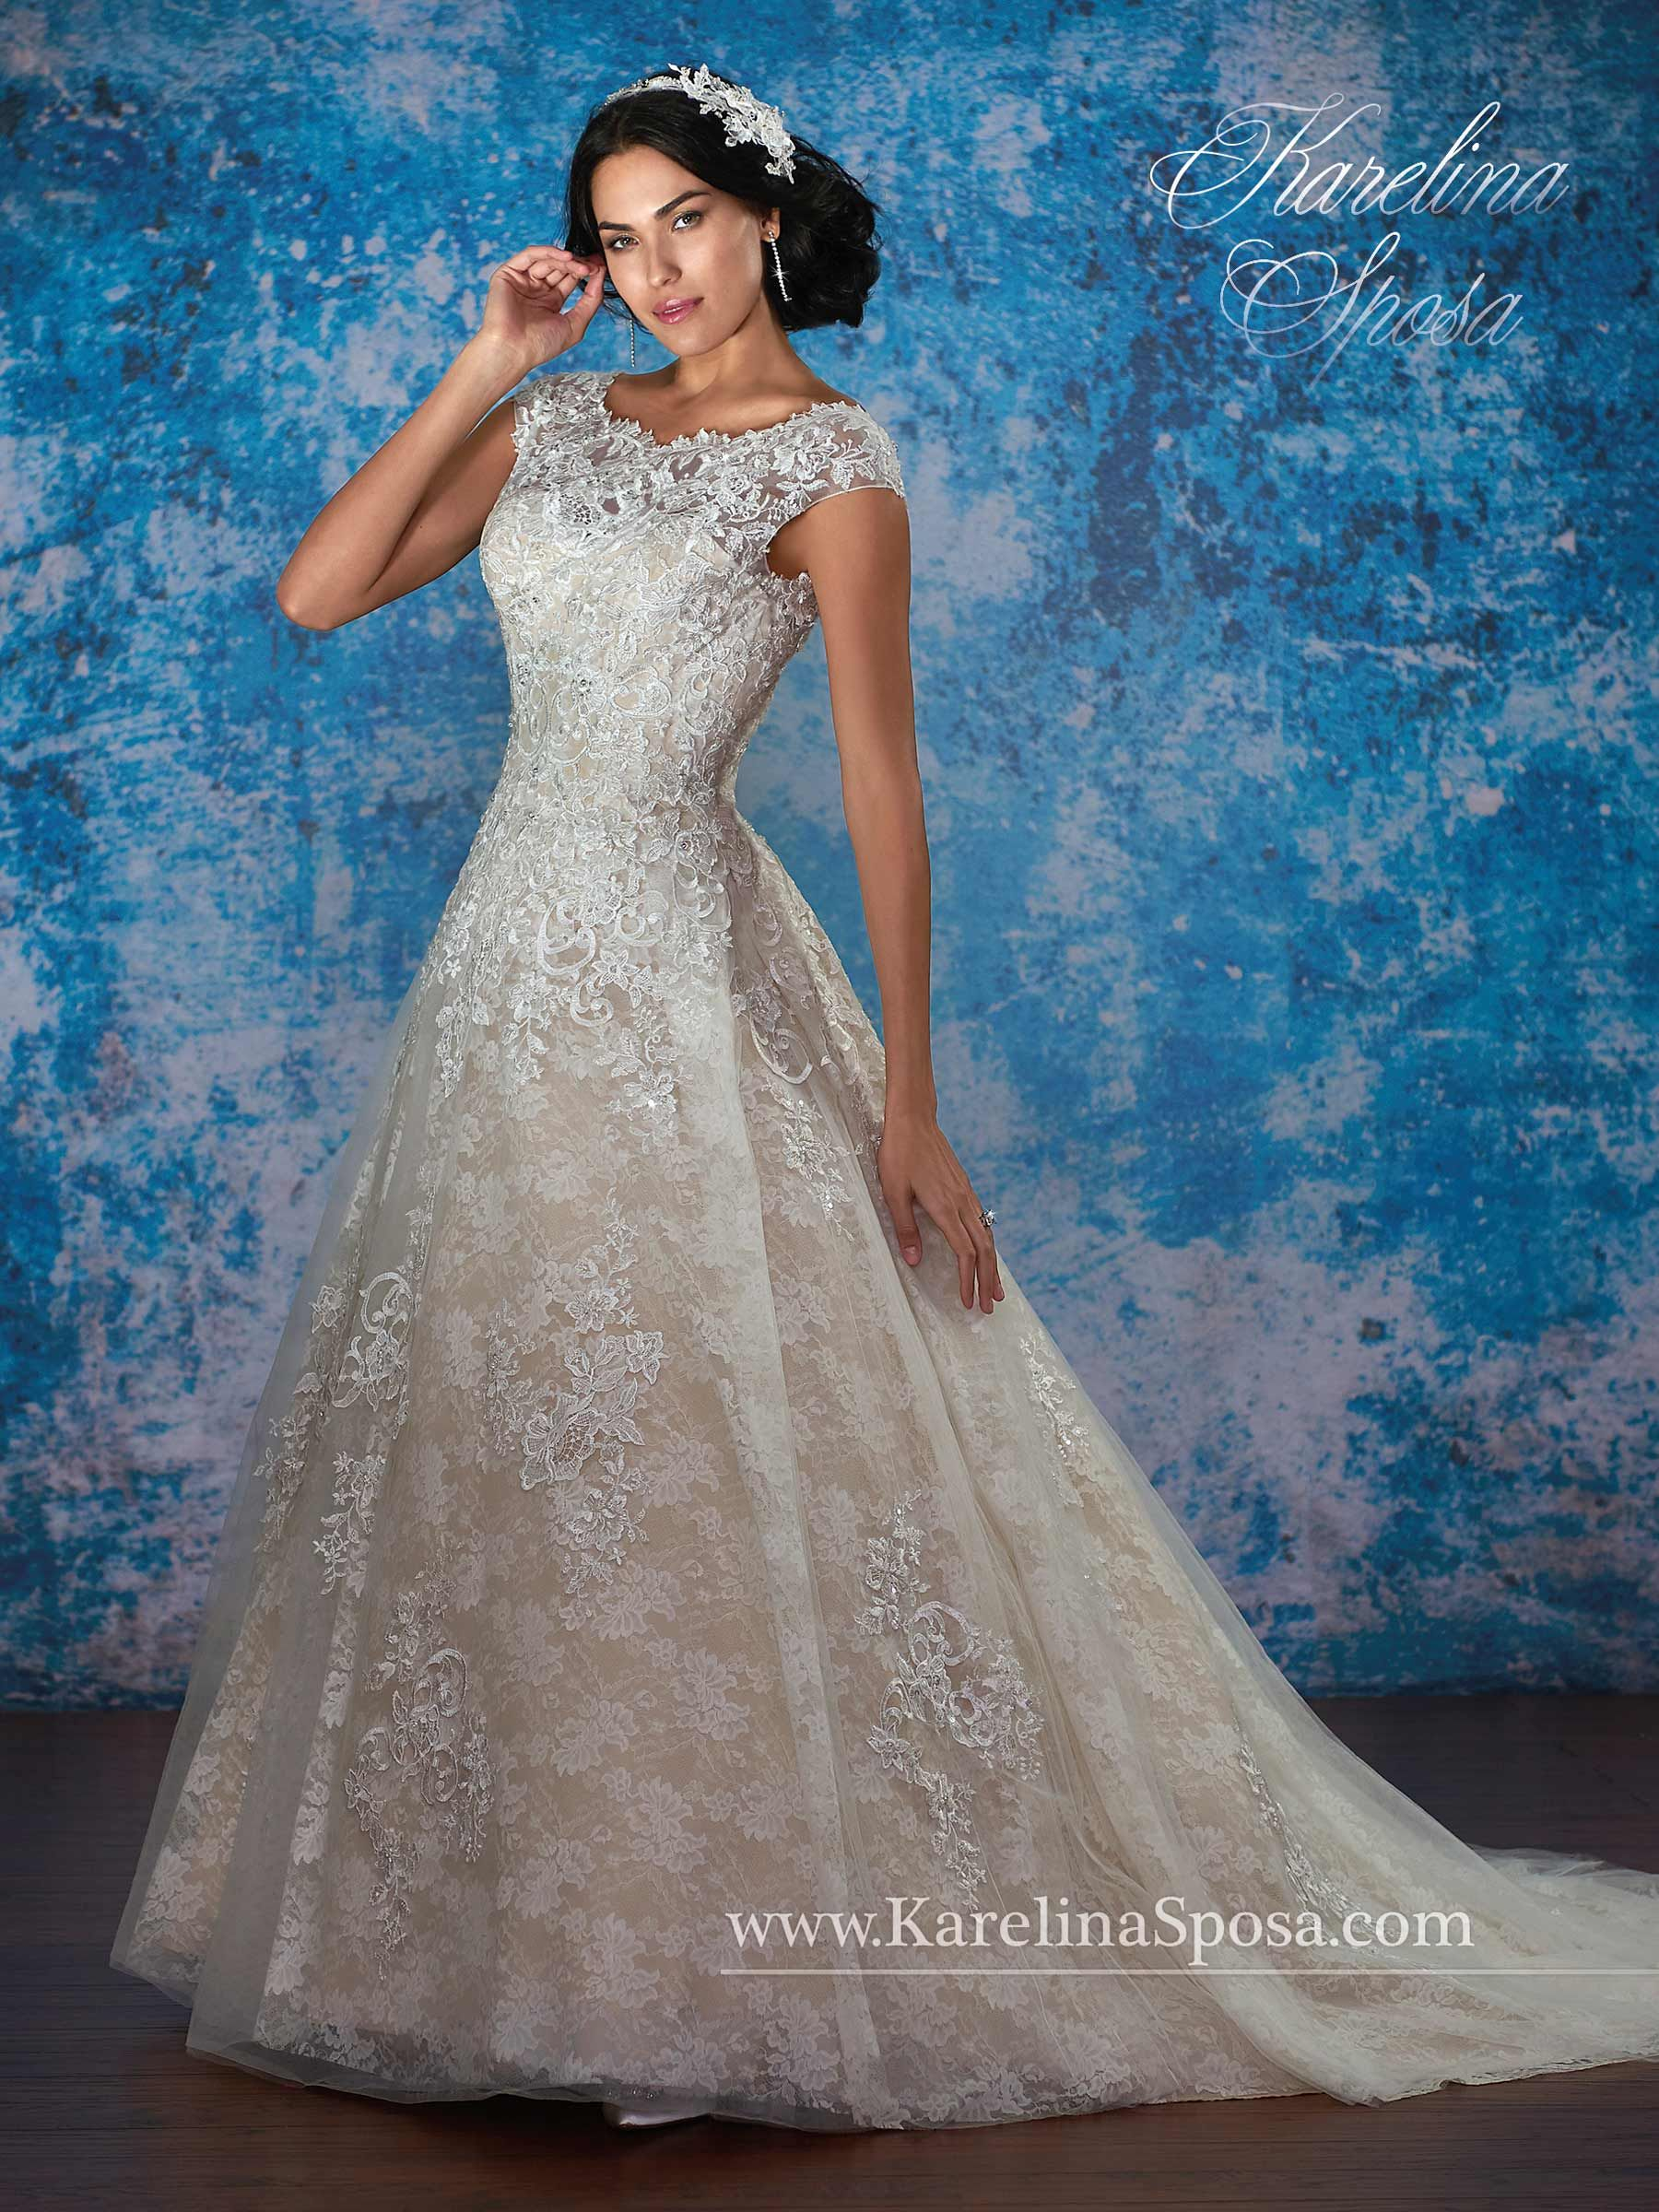 Bridal Gowns - Karelina Sposa - Style: C8072 by Mary\'s Bridal Gowns ...